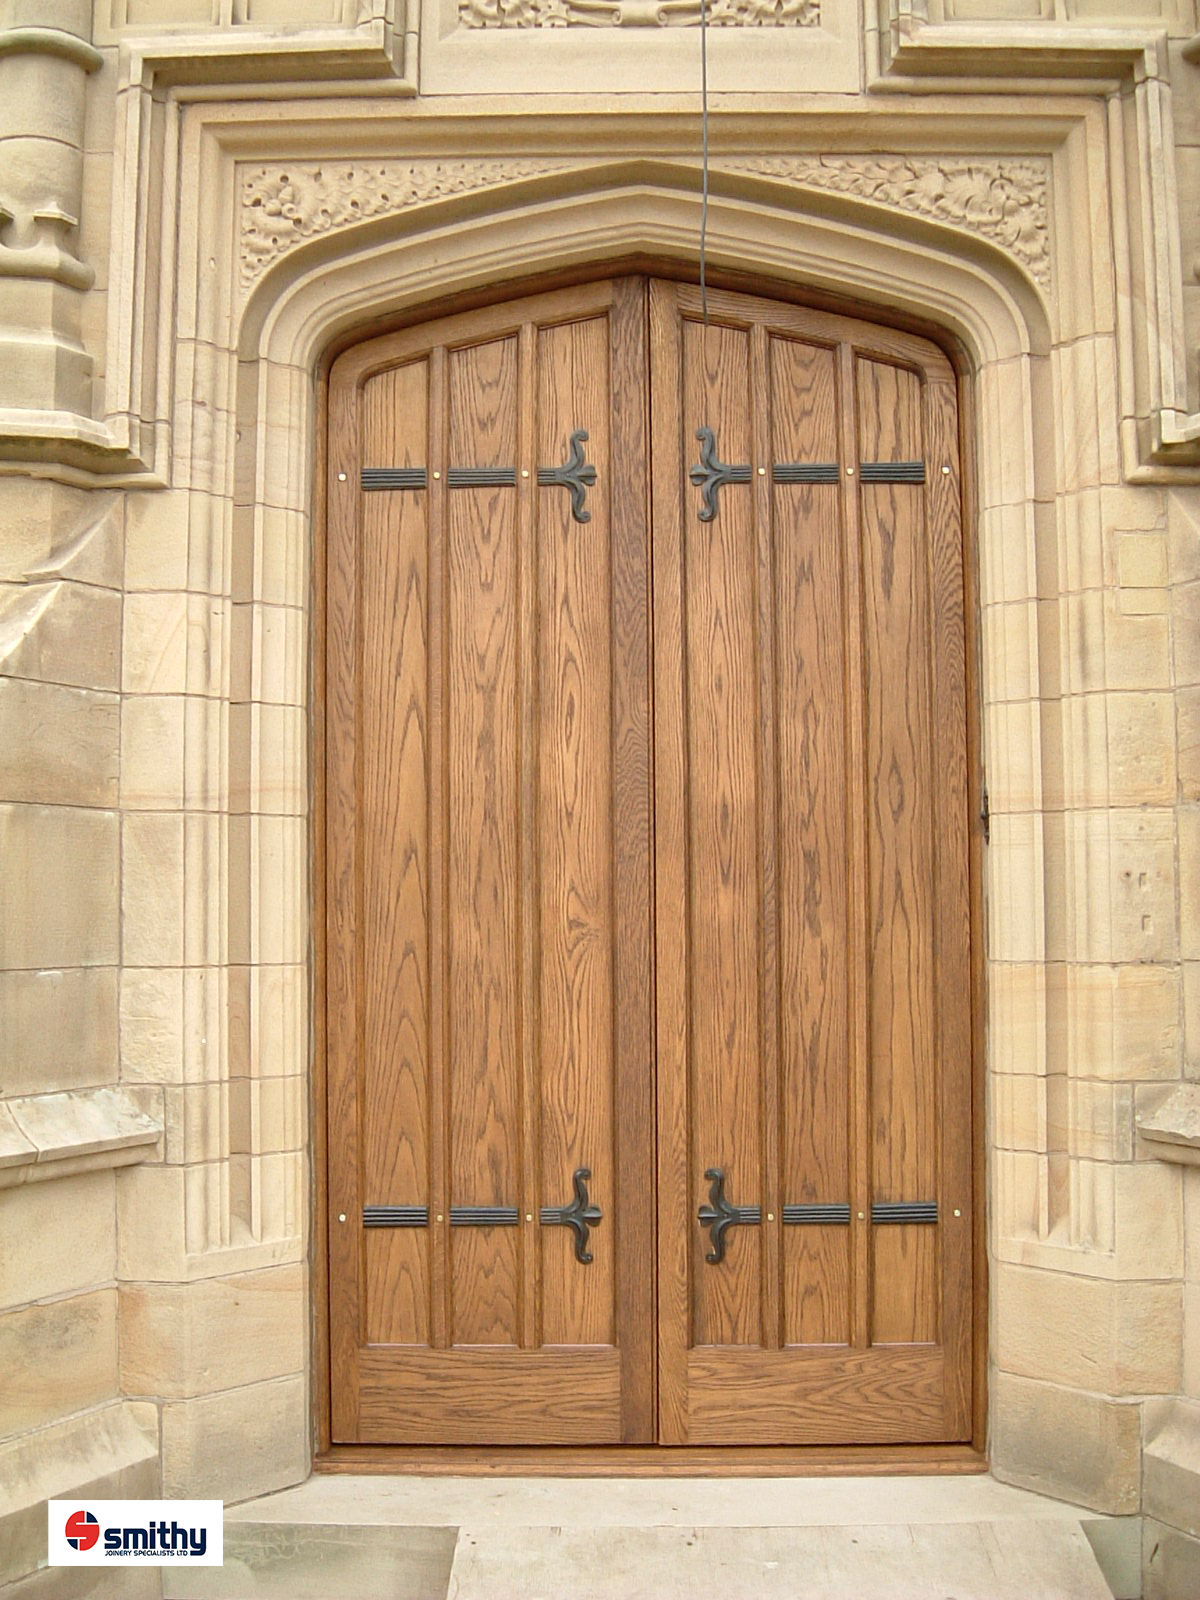 Oak gothic doors for stately home.